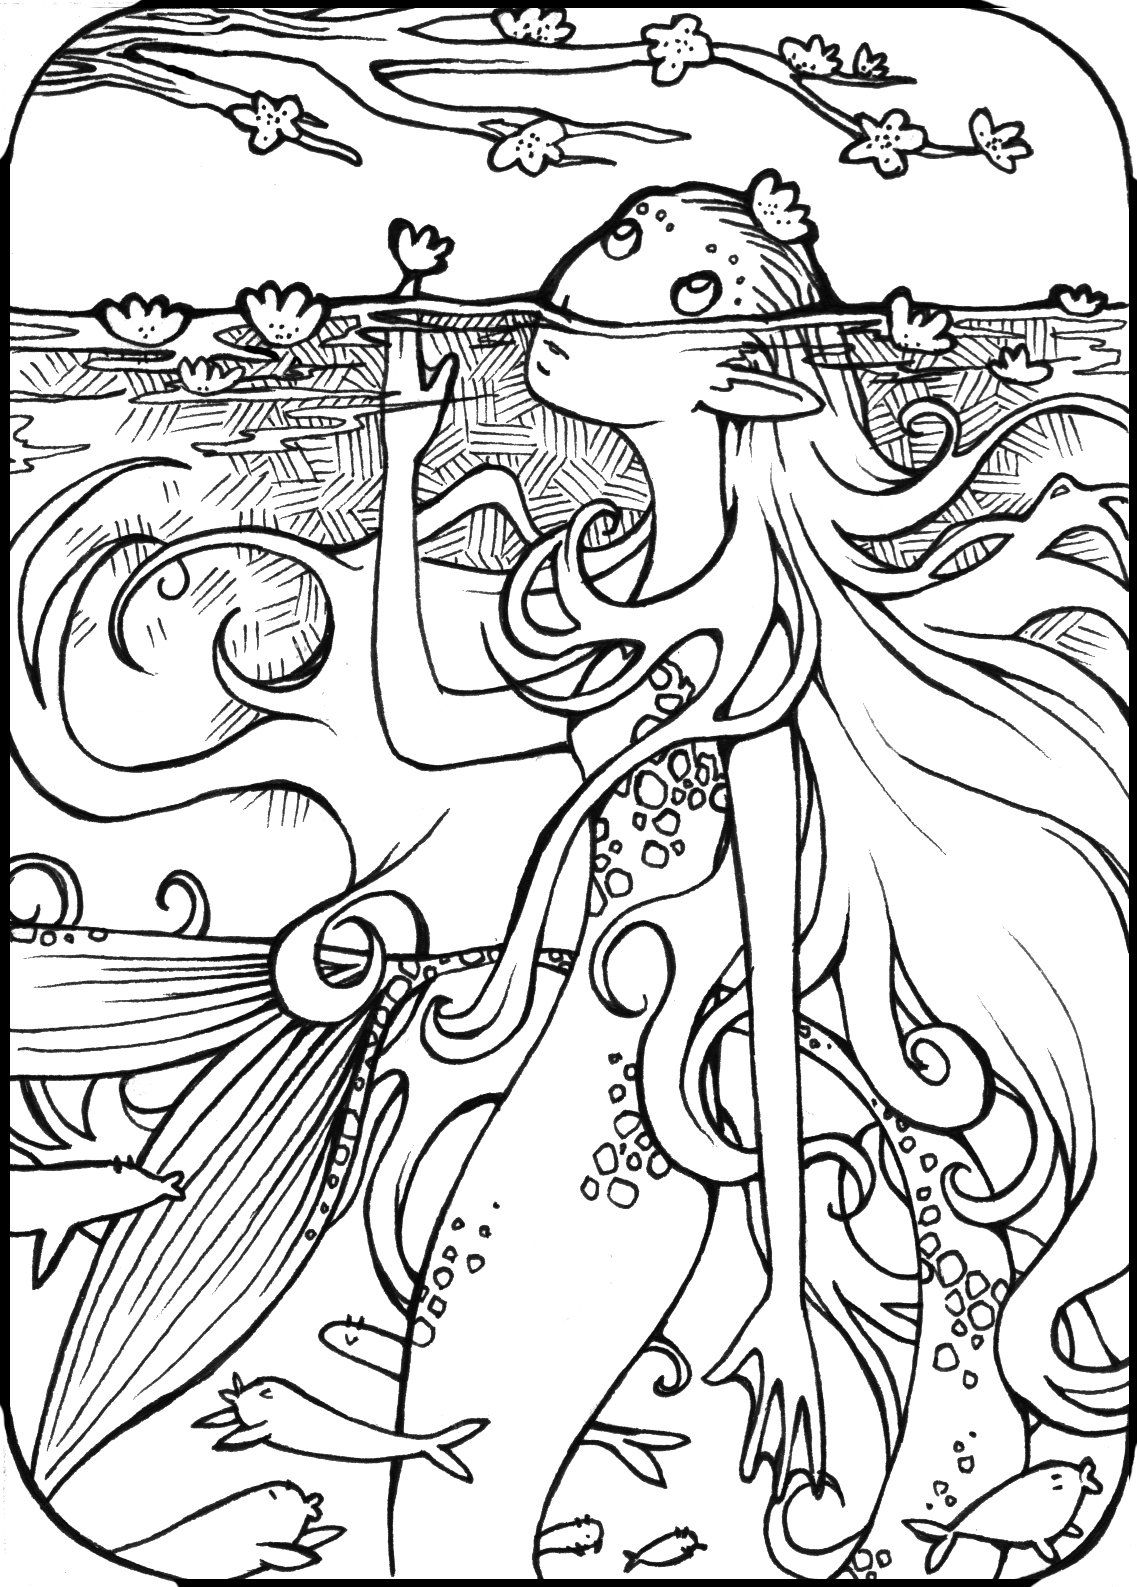 1000+ images about Fantastical Coloring pages on Pinterest